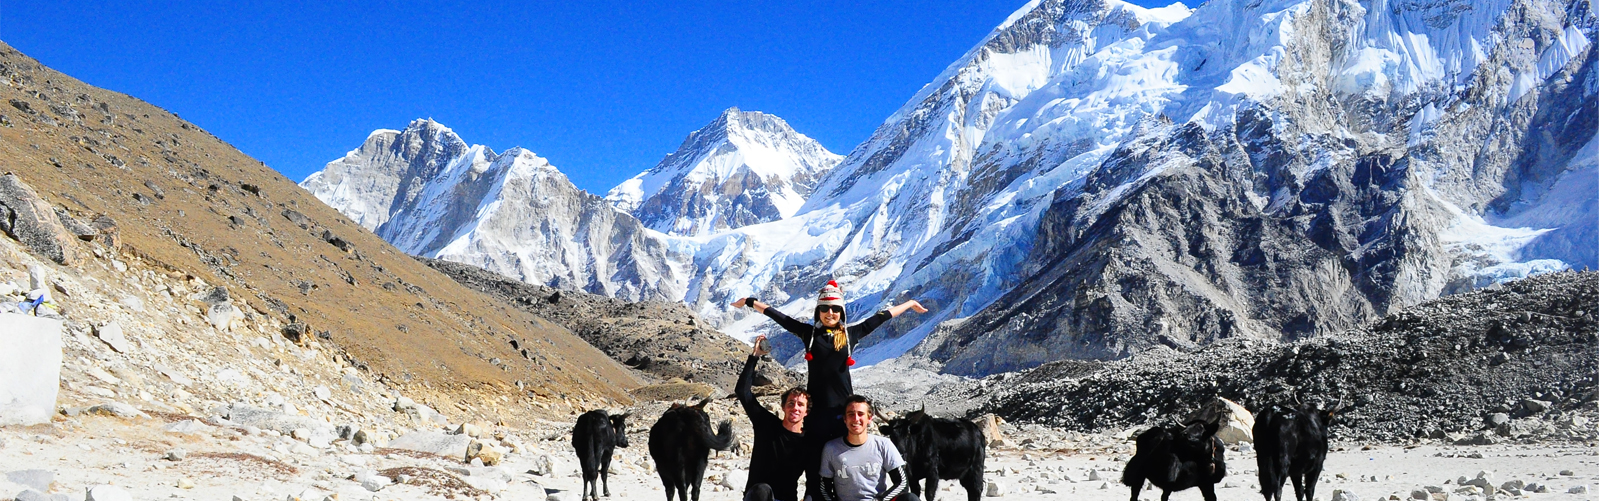 Everest Base Camp Charity holiday